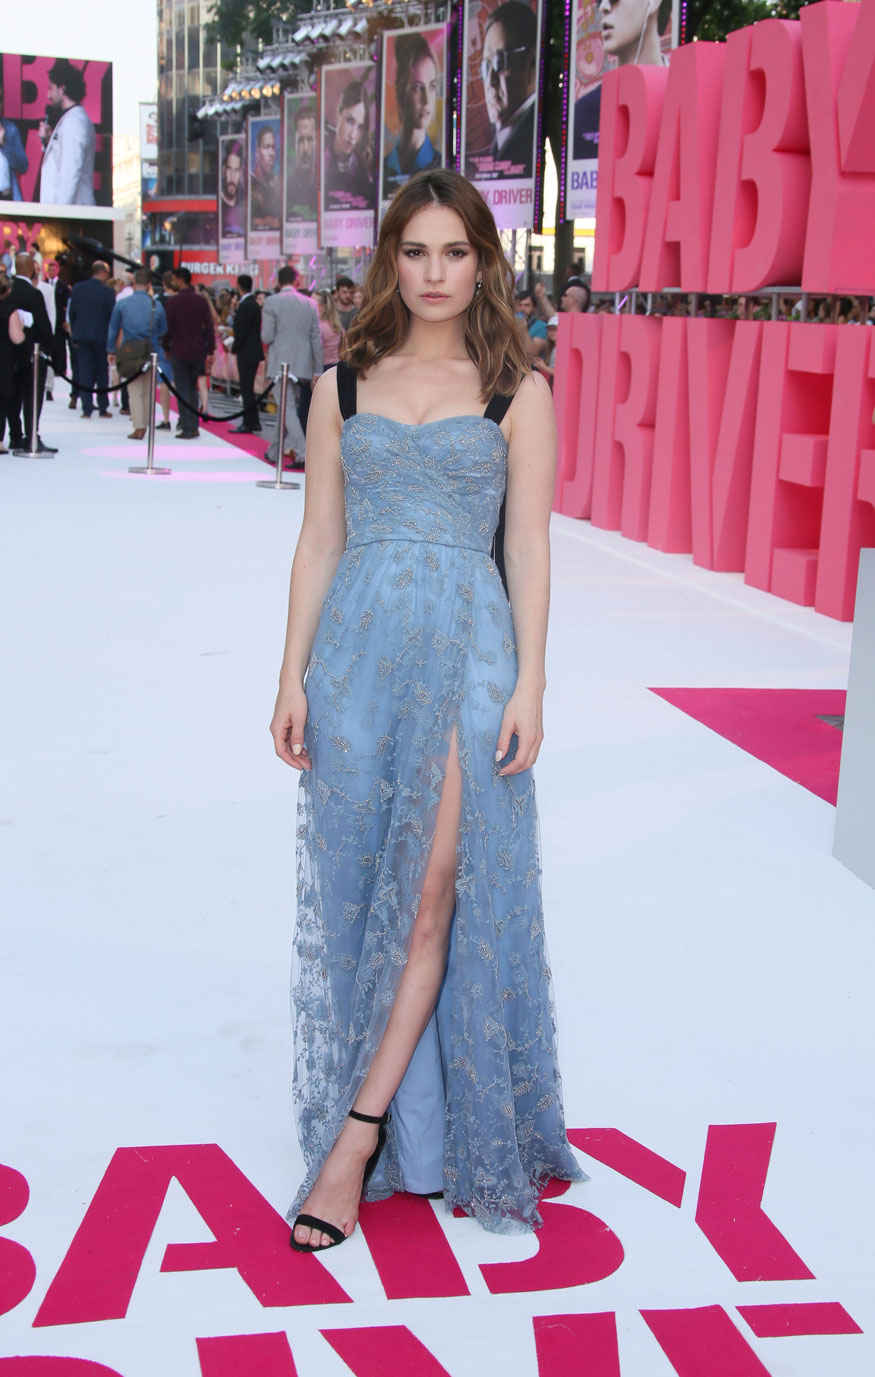 Actress Lily James poses for photographers upon arrival at The premiere of the film 'Baby Driver' in London